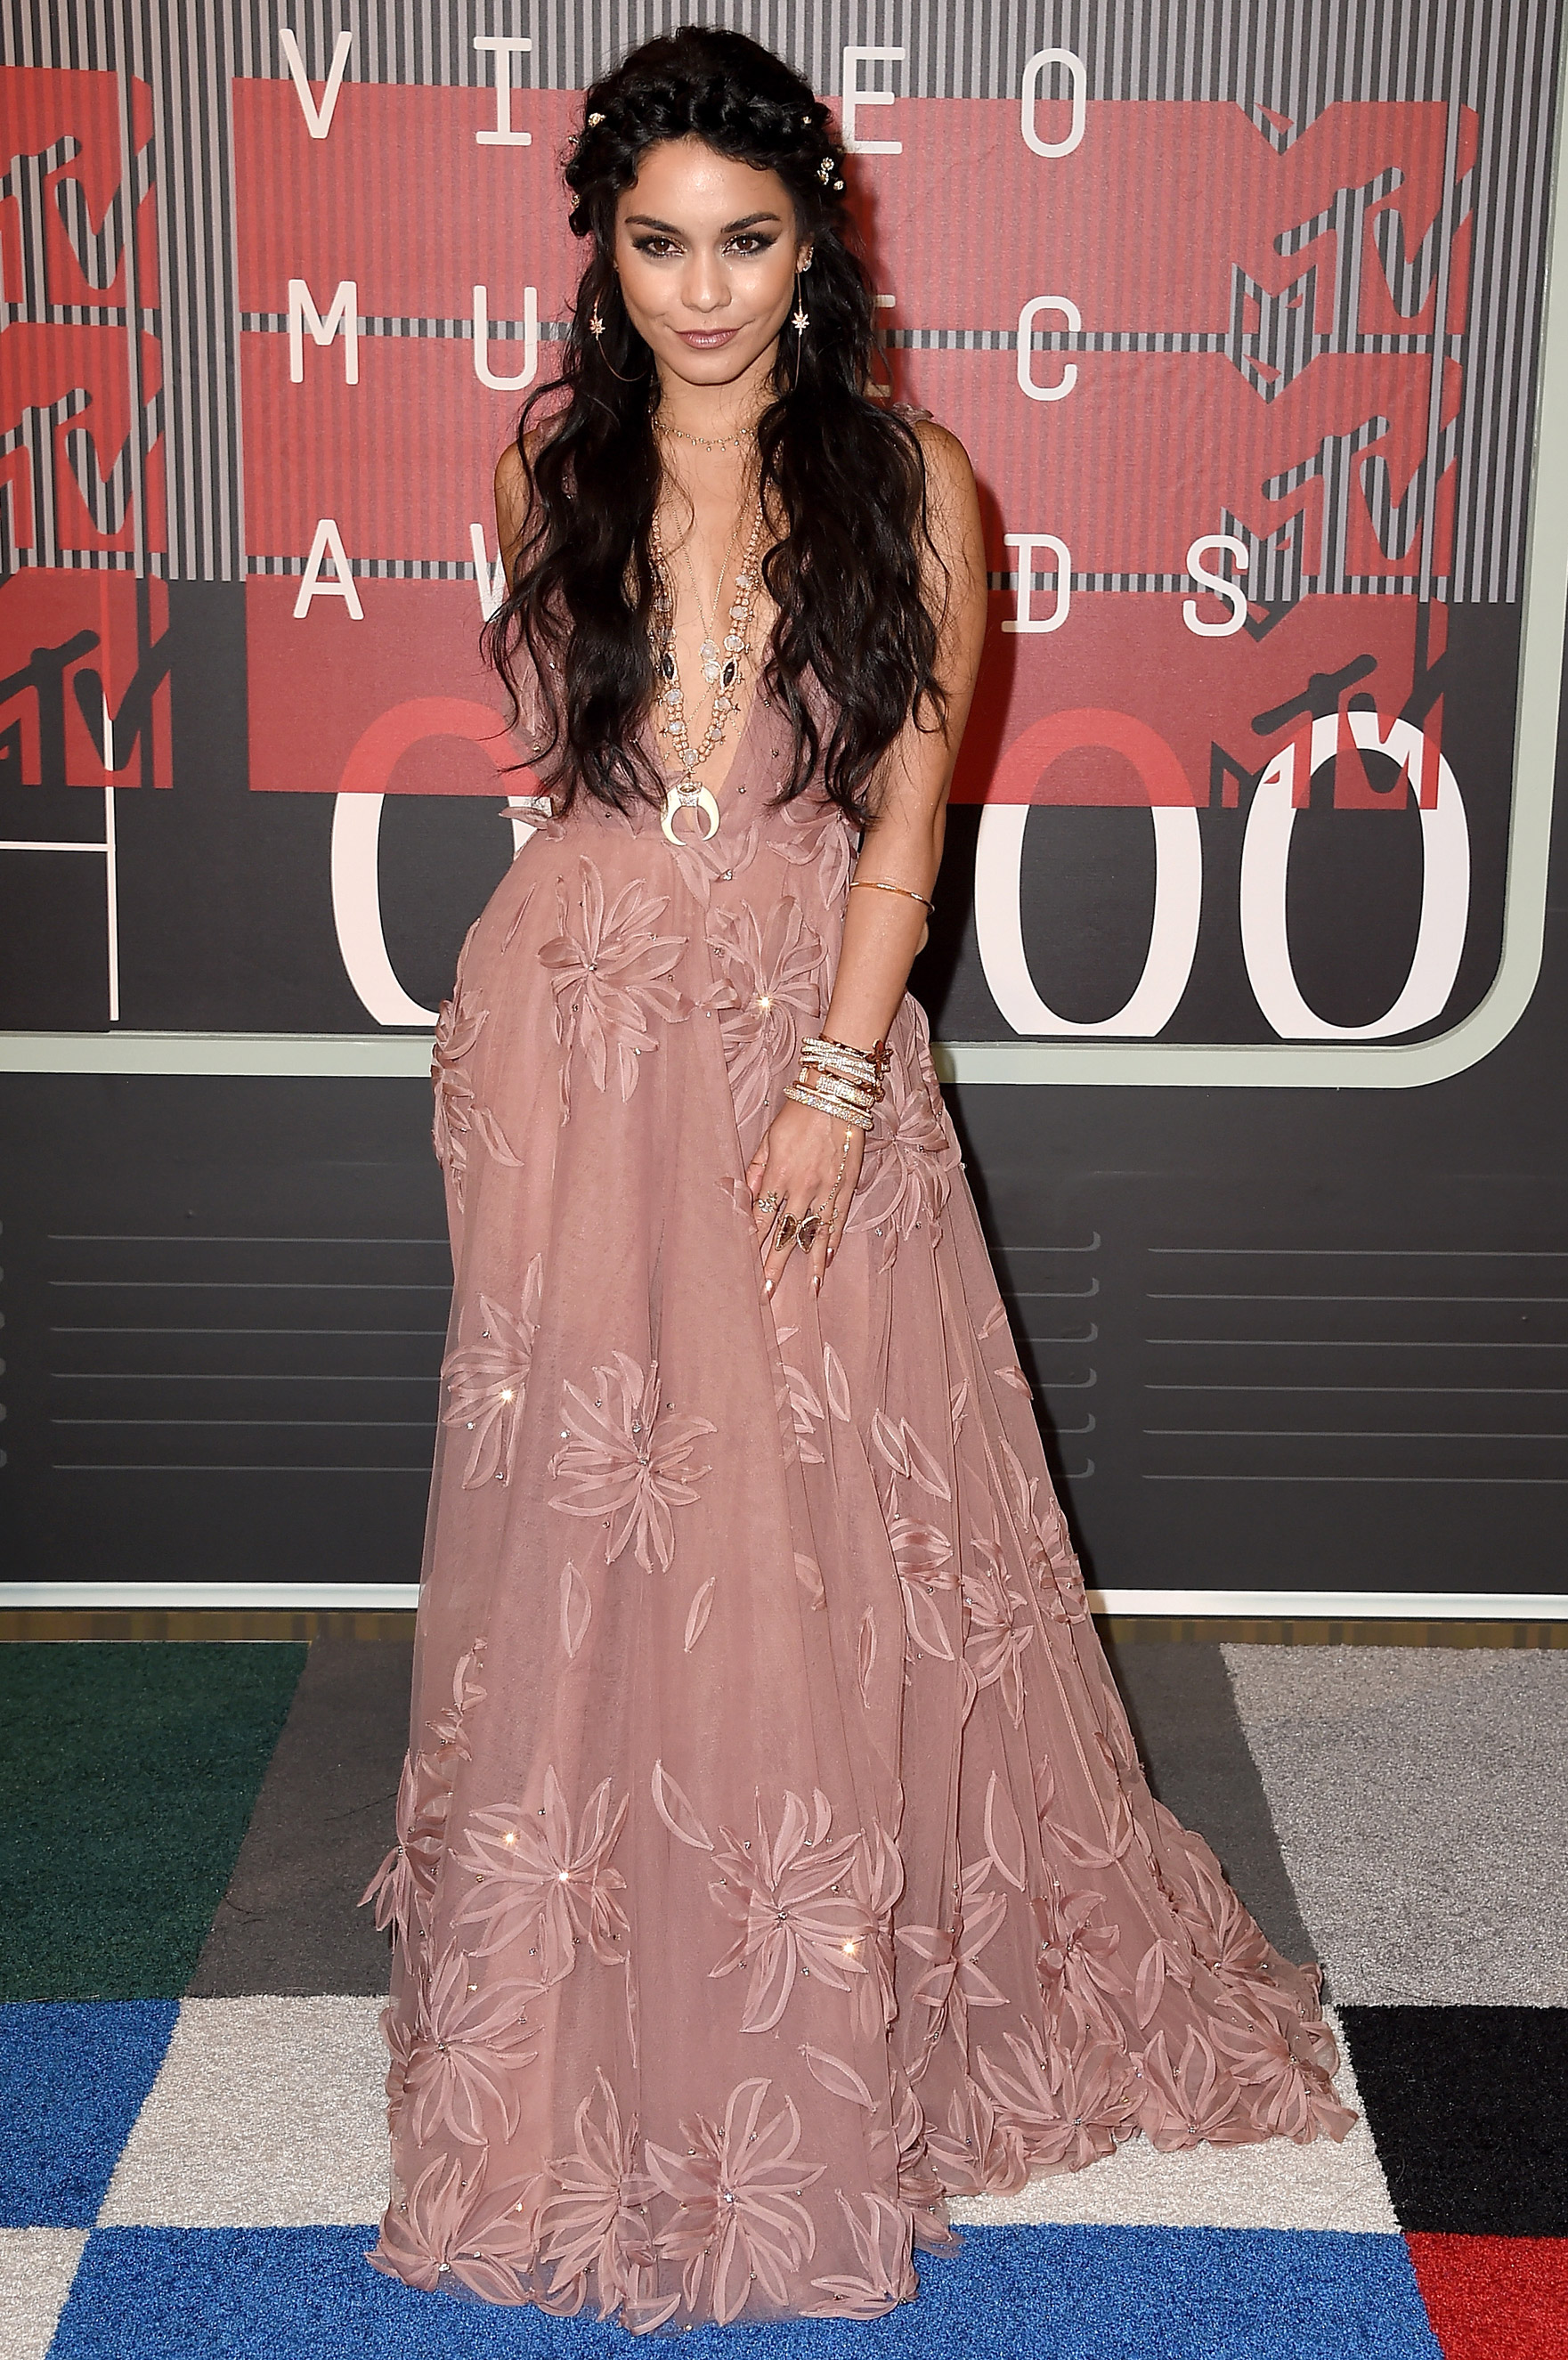 Vanessa Hudgens arrives at the 2015 MTV Video Music Awards at Microsoft Theater on Aug. 30, 2015 in Los Angeles.